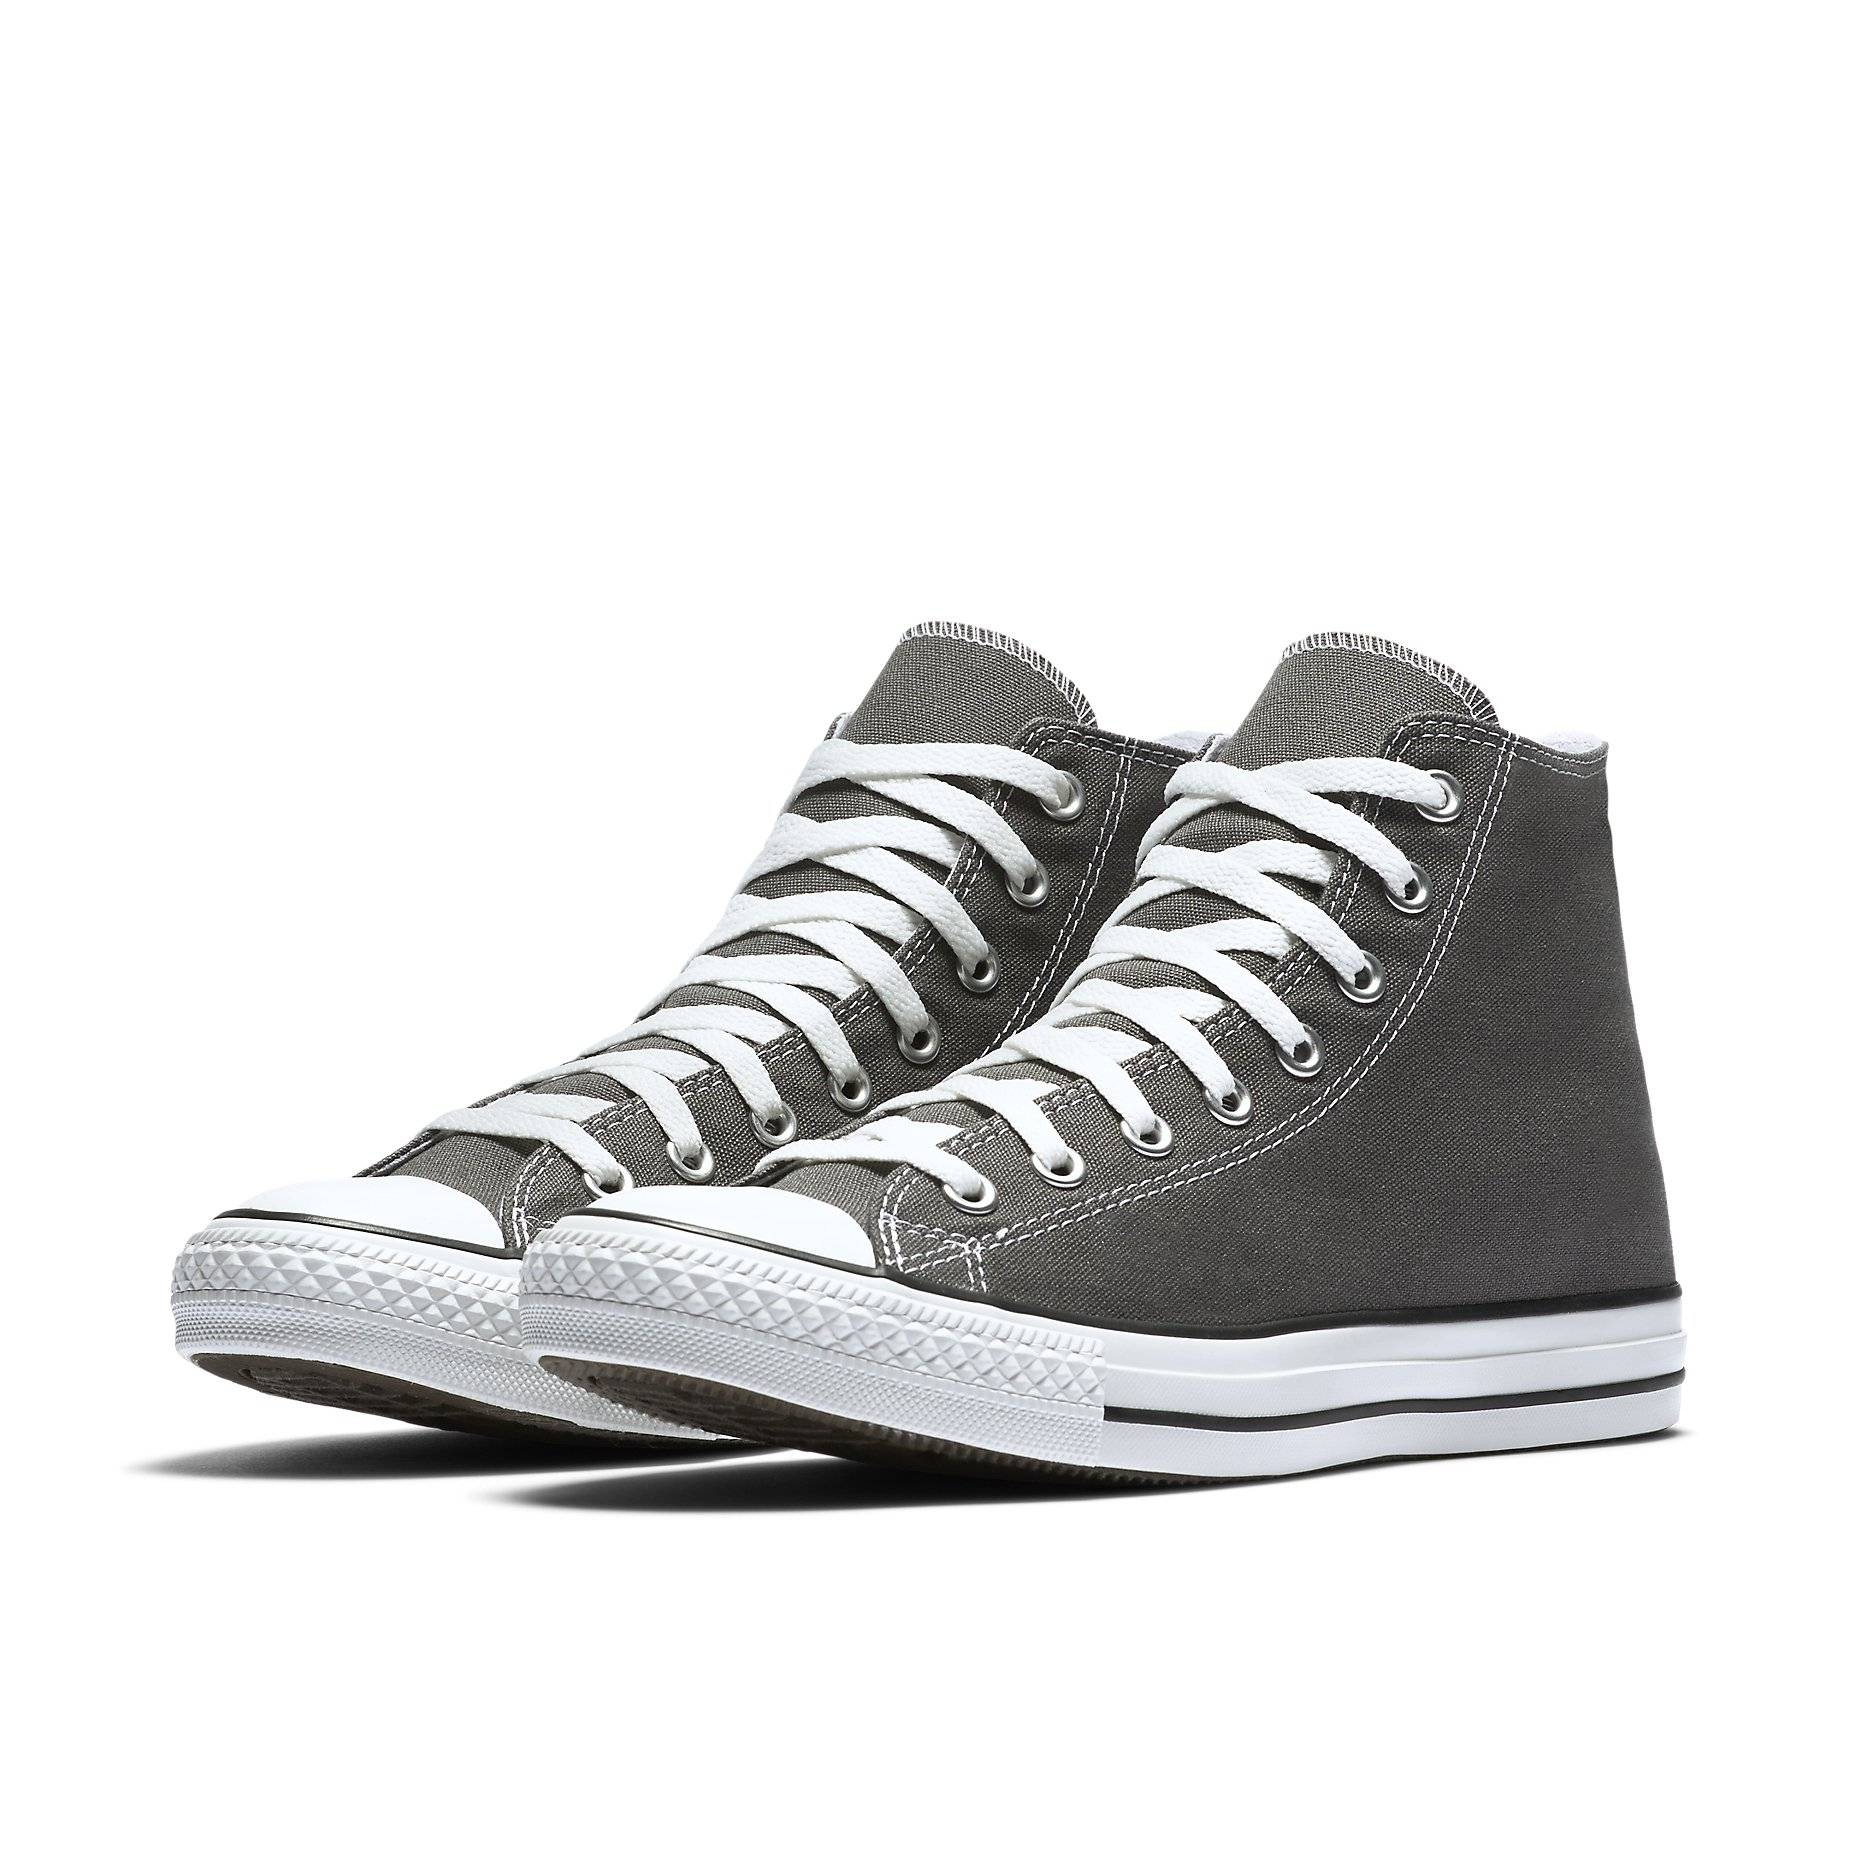 Converse All Star Chaussures 1J793C Charbon Taille 8